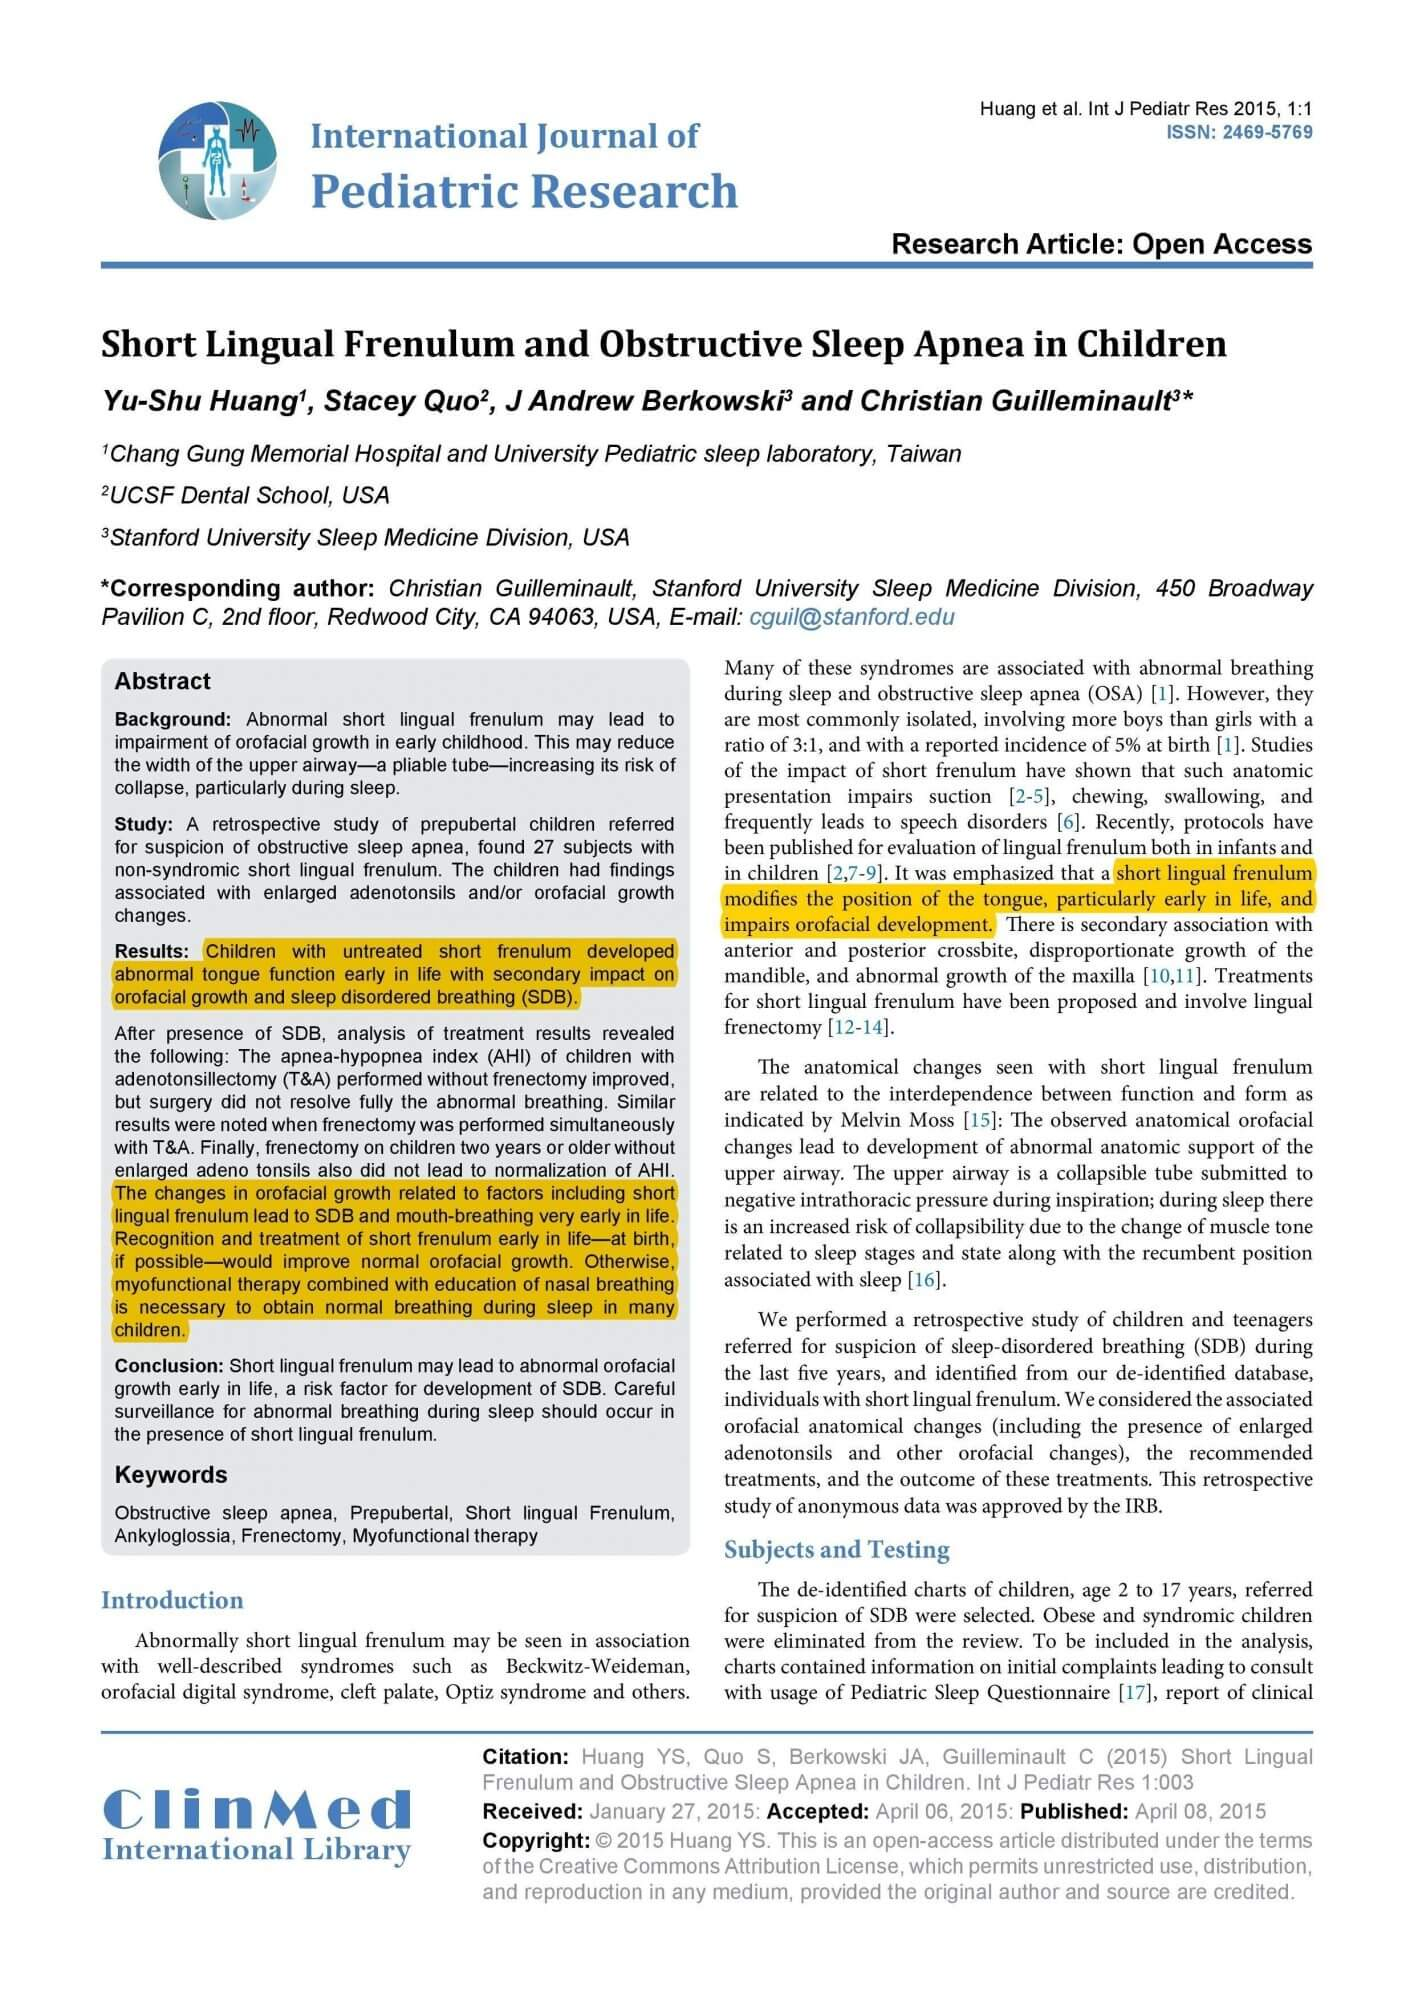 Short Lingual Frenulum and Obstructive Sleep Apnea in Children-1